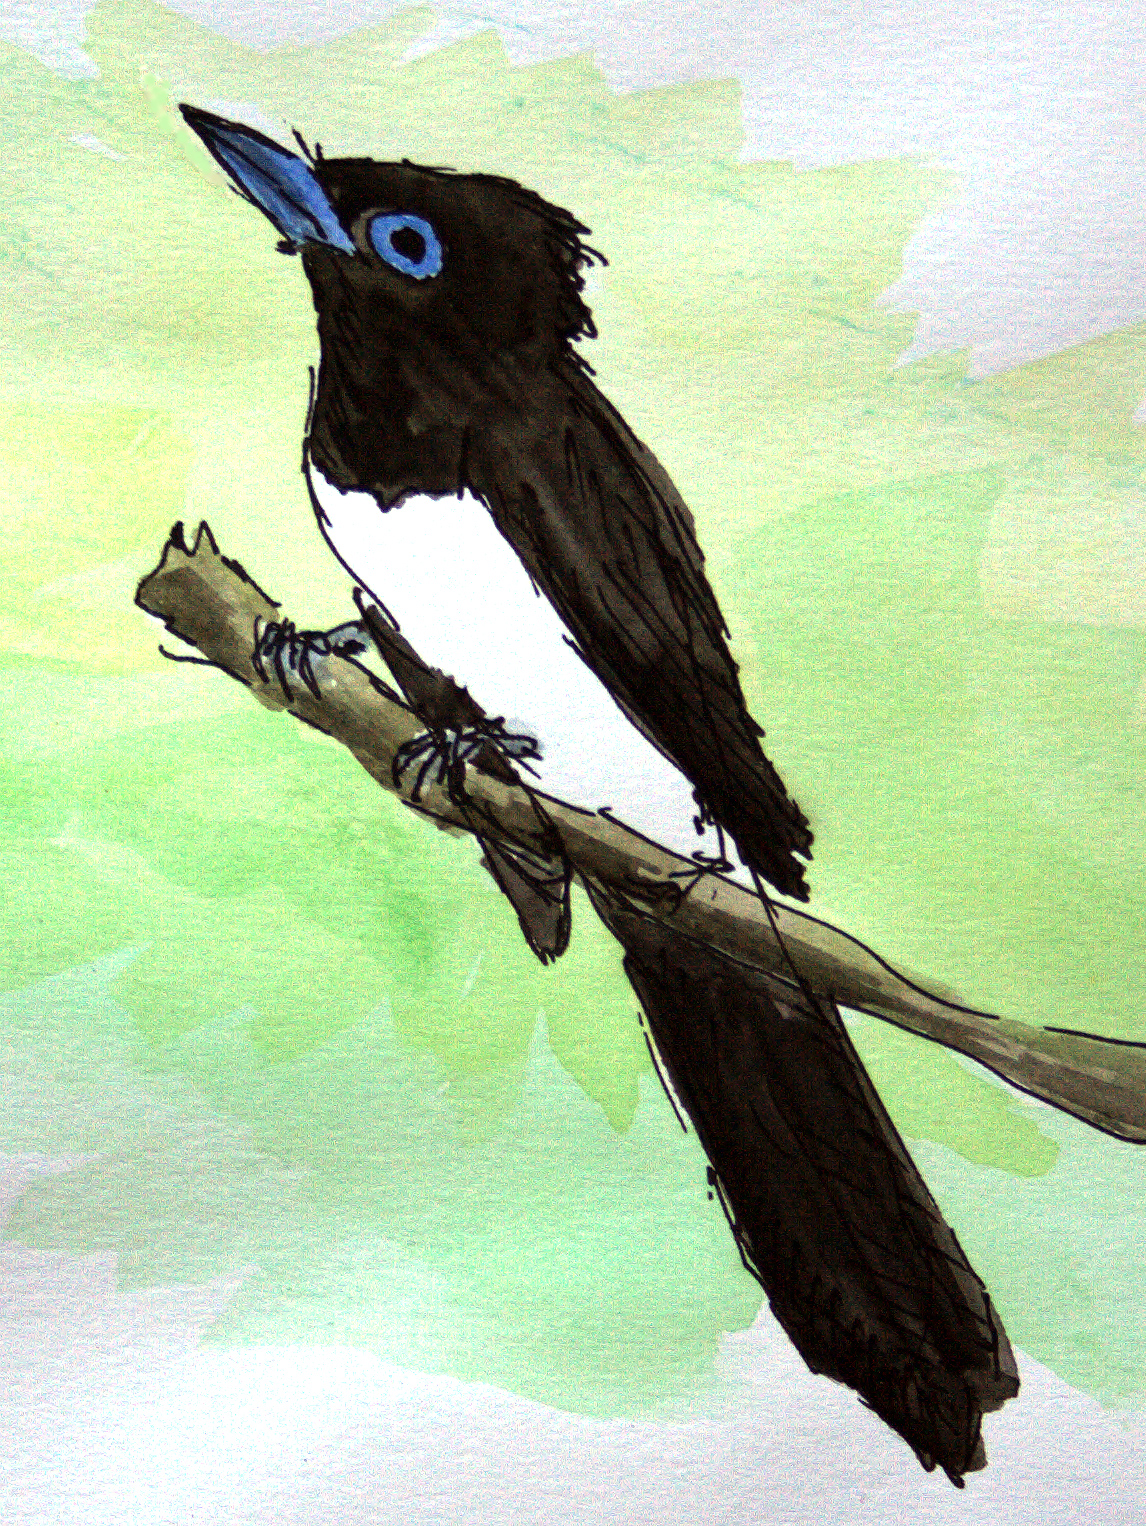 Japanese Paradise Flycatcher Terpsiphone atrocaudata, aquarelle and black ink. Observed 8 Sept. 2017 at Cape Nanhui. (Louis-Jean Germain)